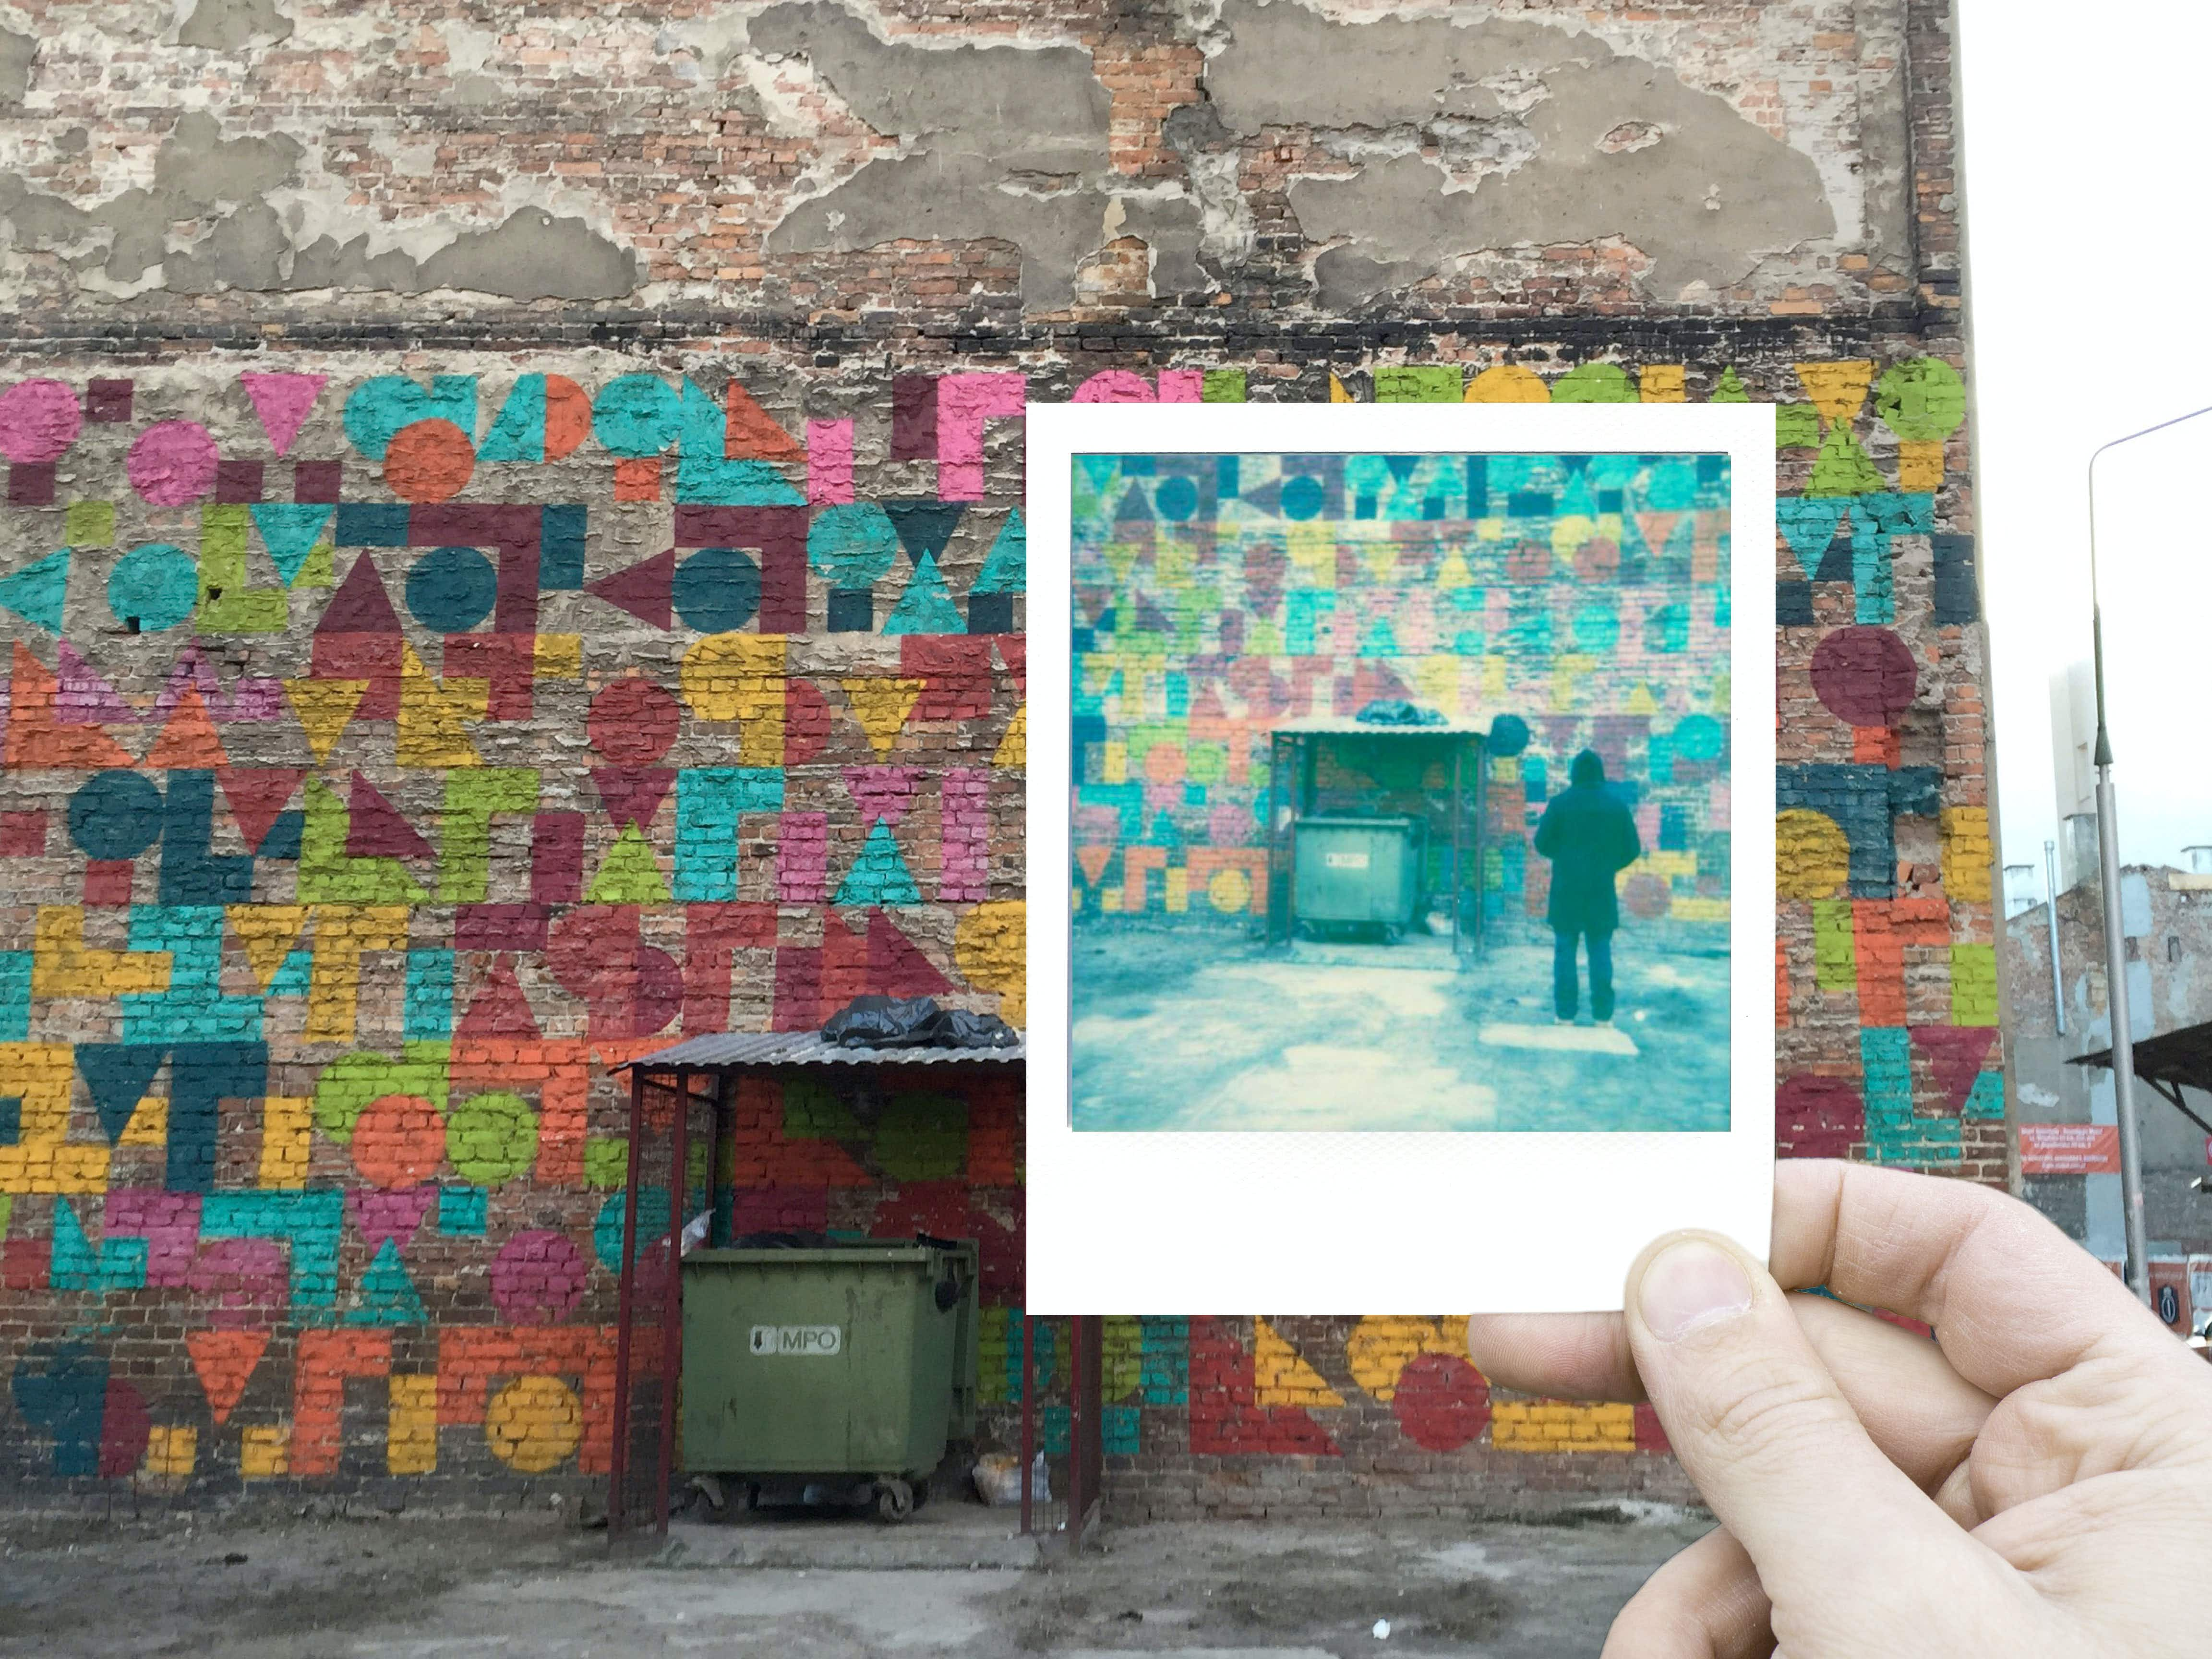 Put the smartphone down, Austria and Poland now run Polaroid photo tours